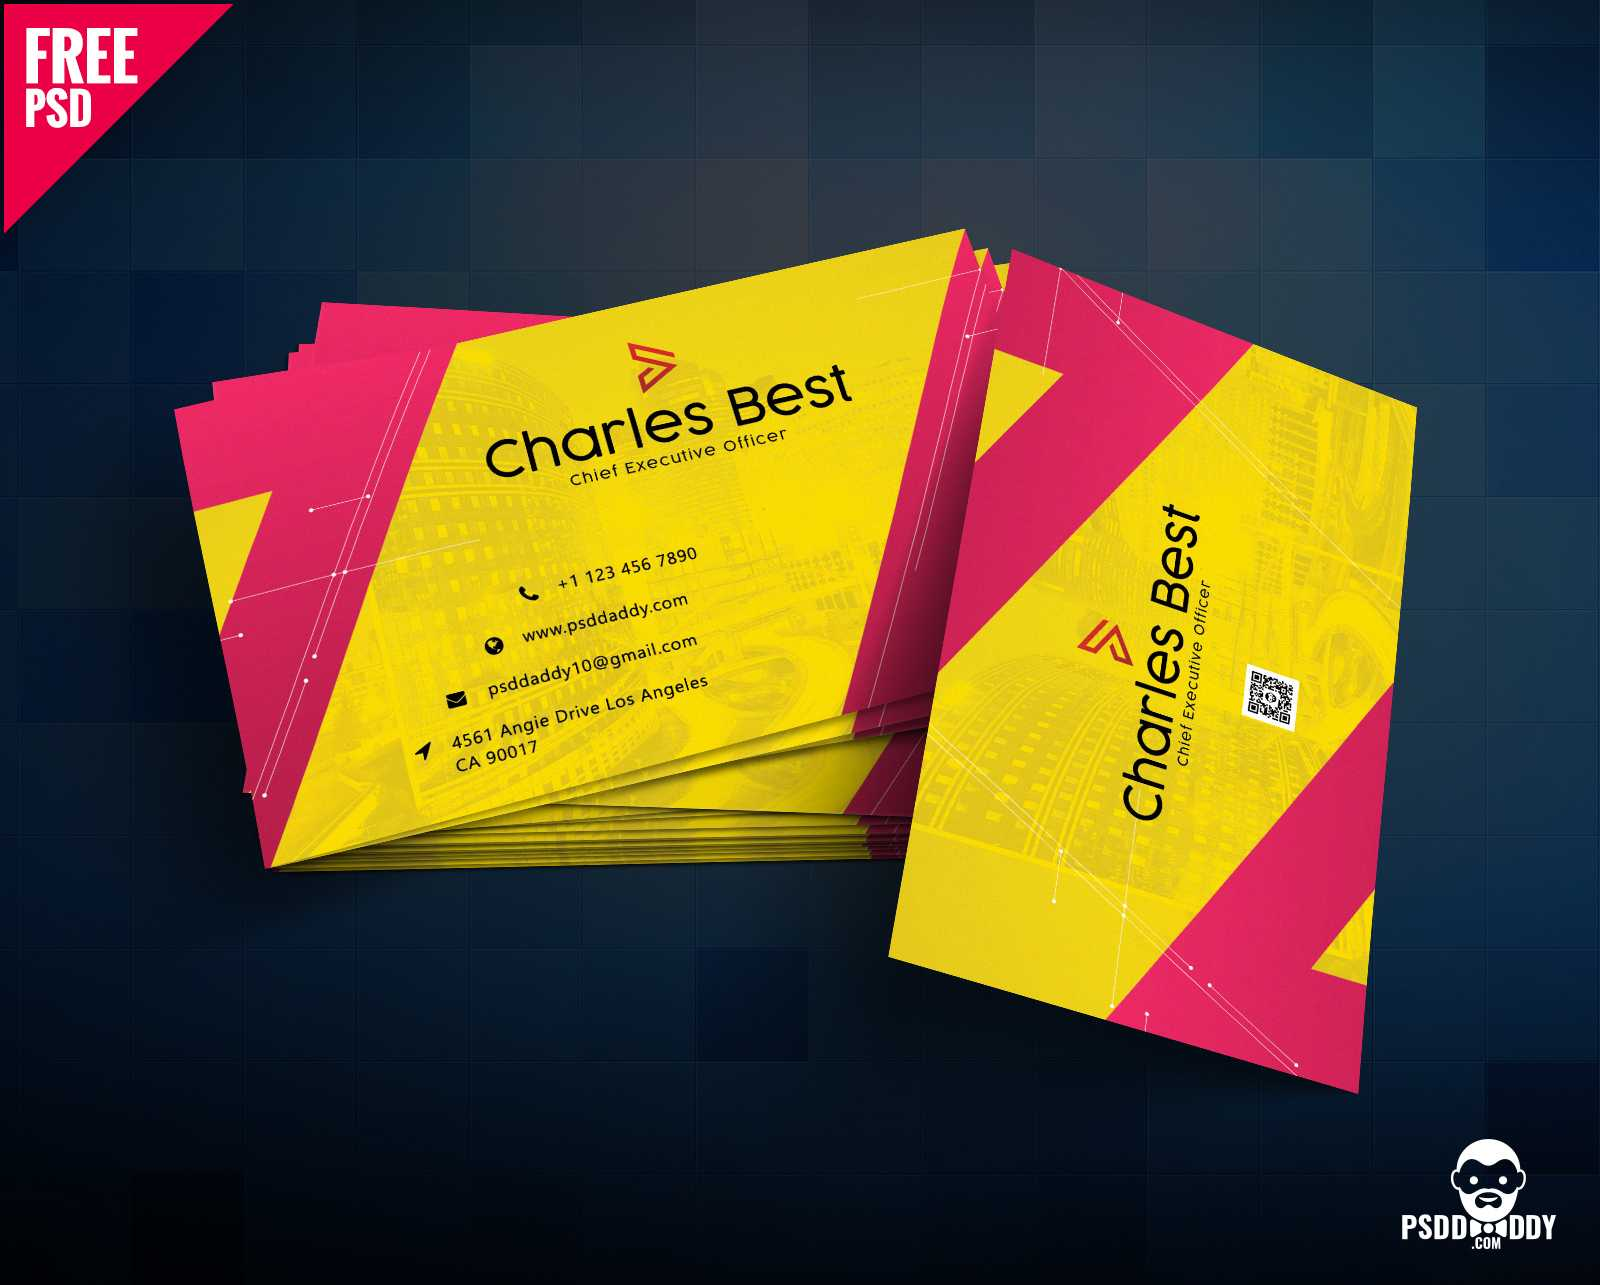 Download] Creative Business Card Free Psd | Psddaddy Intended For Visiting Card Templates For Photoshop